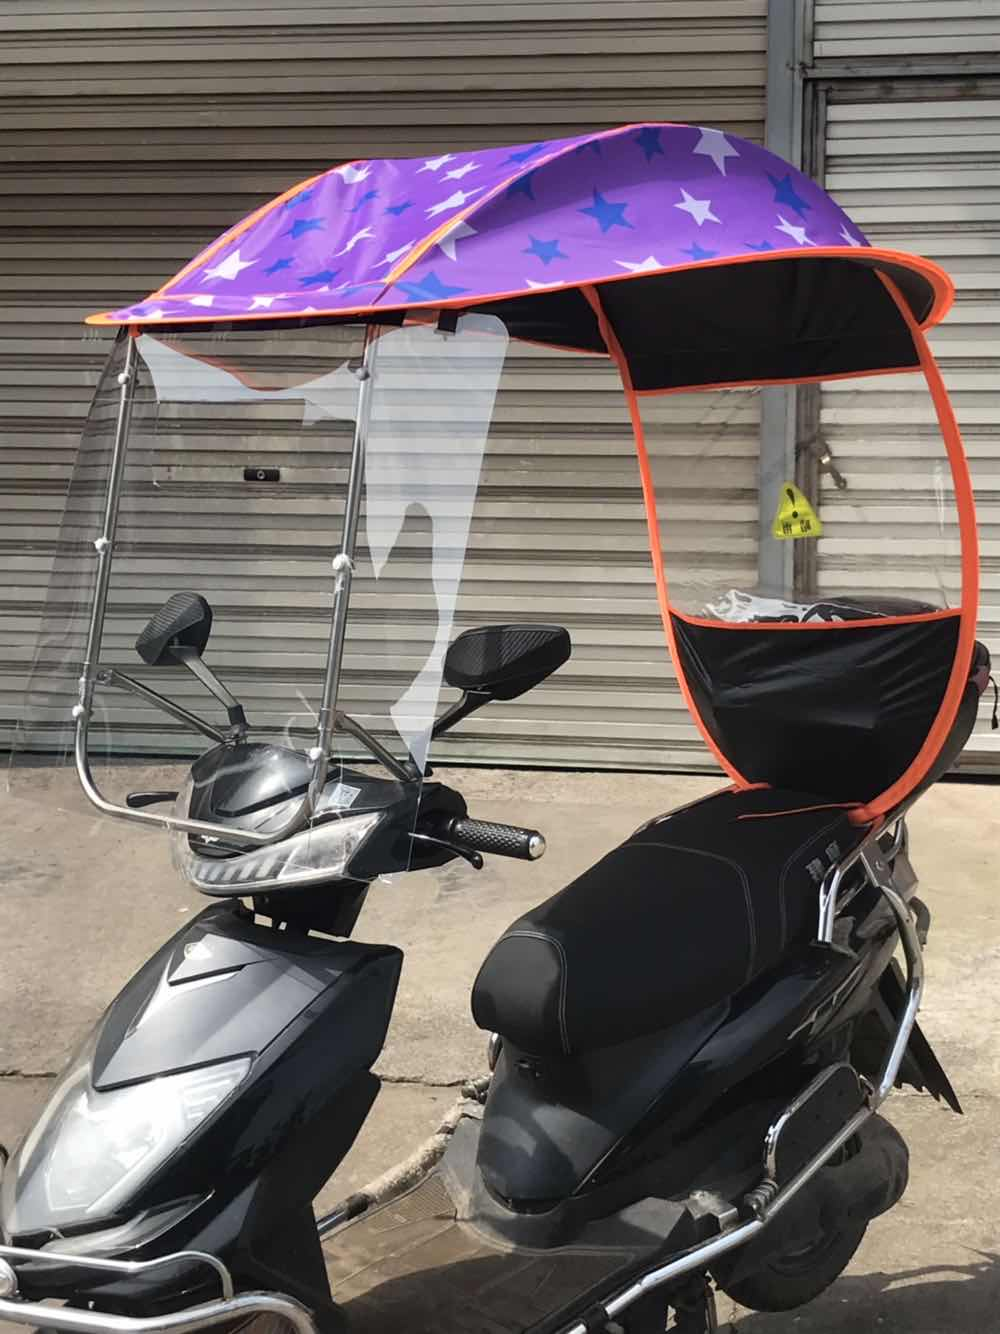 Fashion Electric Bike Umbrella Good Outdoor Windproof Sunshade Cover Motorcycle  Umbrella Electric Scooter Umbrella For Rain - Buy Fashion Electric Bike  Umbrella,Good Outdoor Windproof Sunshade Cover Motorcycle Umbrella,Electric  Scooter Umbrella For Rain